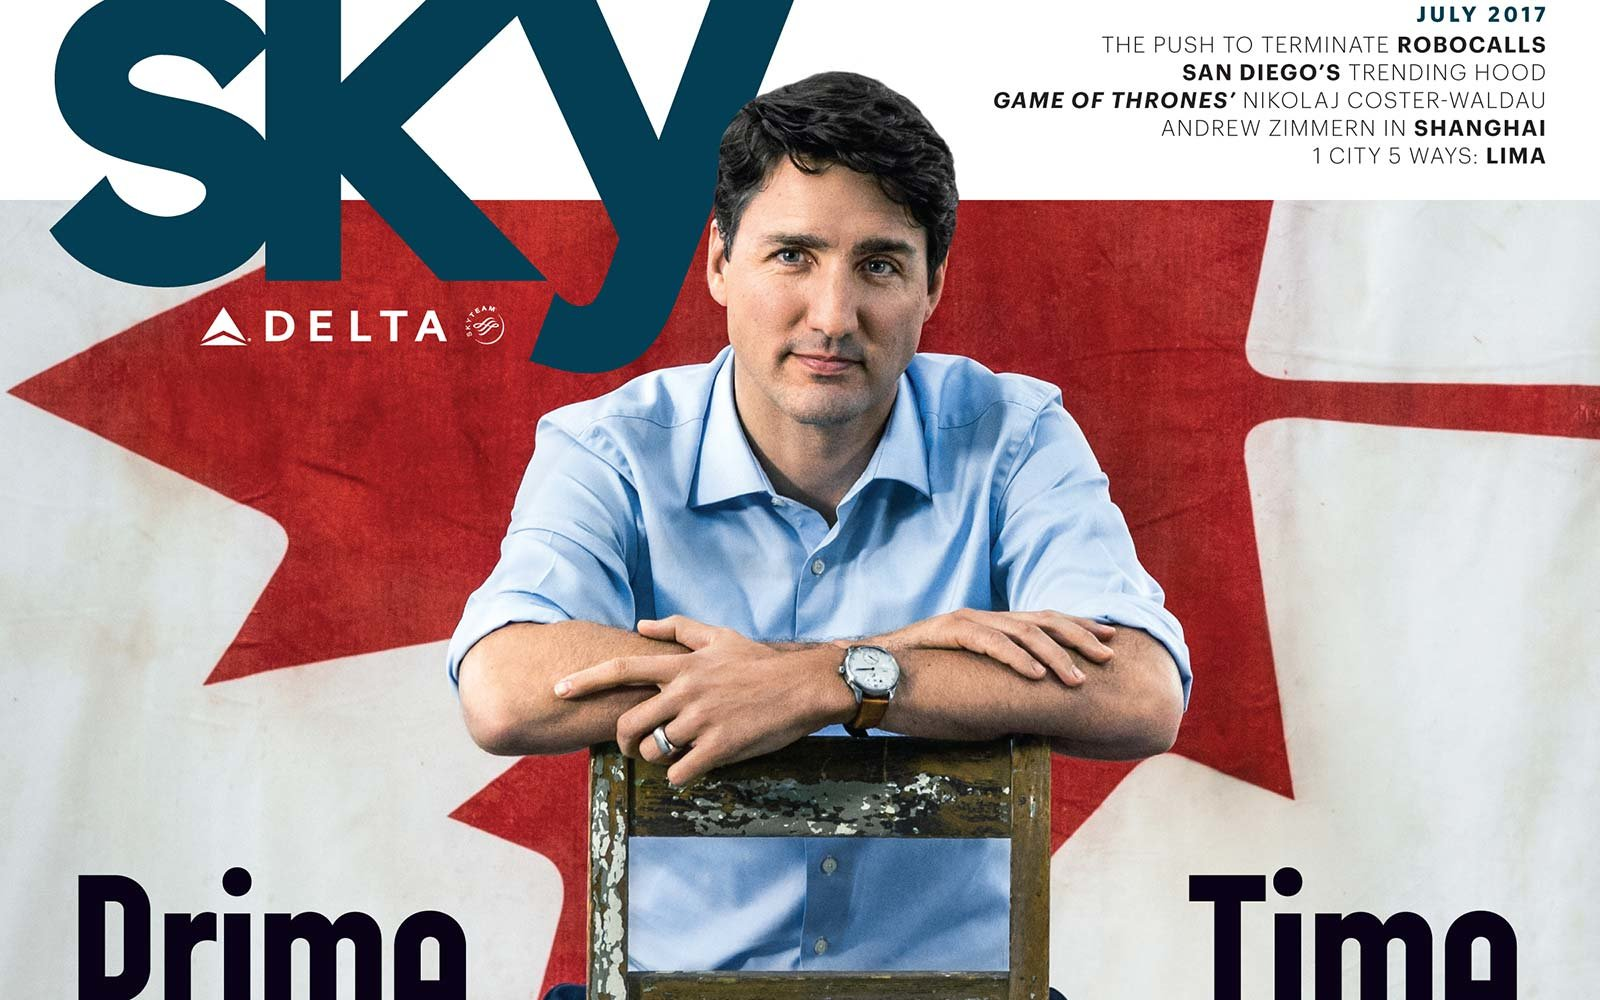 Delta SkyMag July 2017 Justin Trudeau Canada 150th Birthday Cover